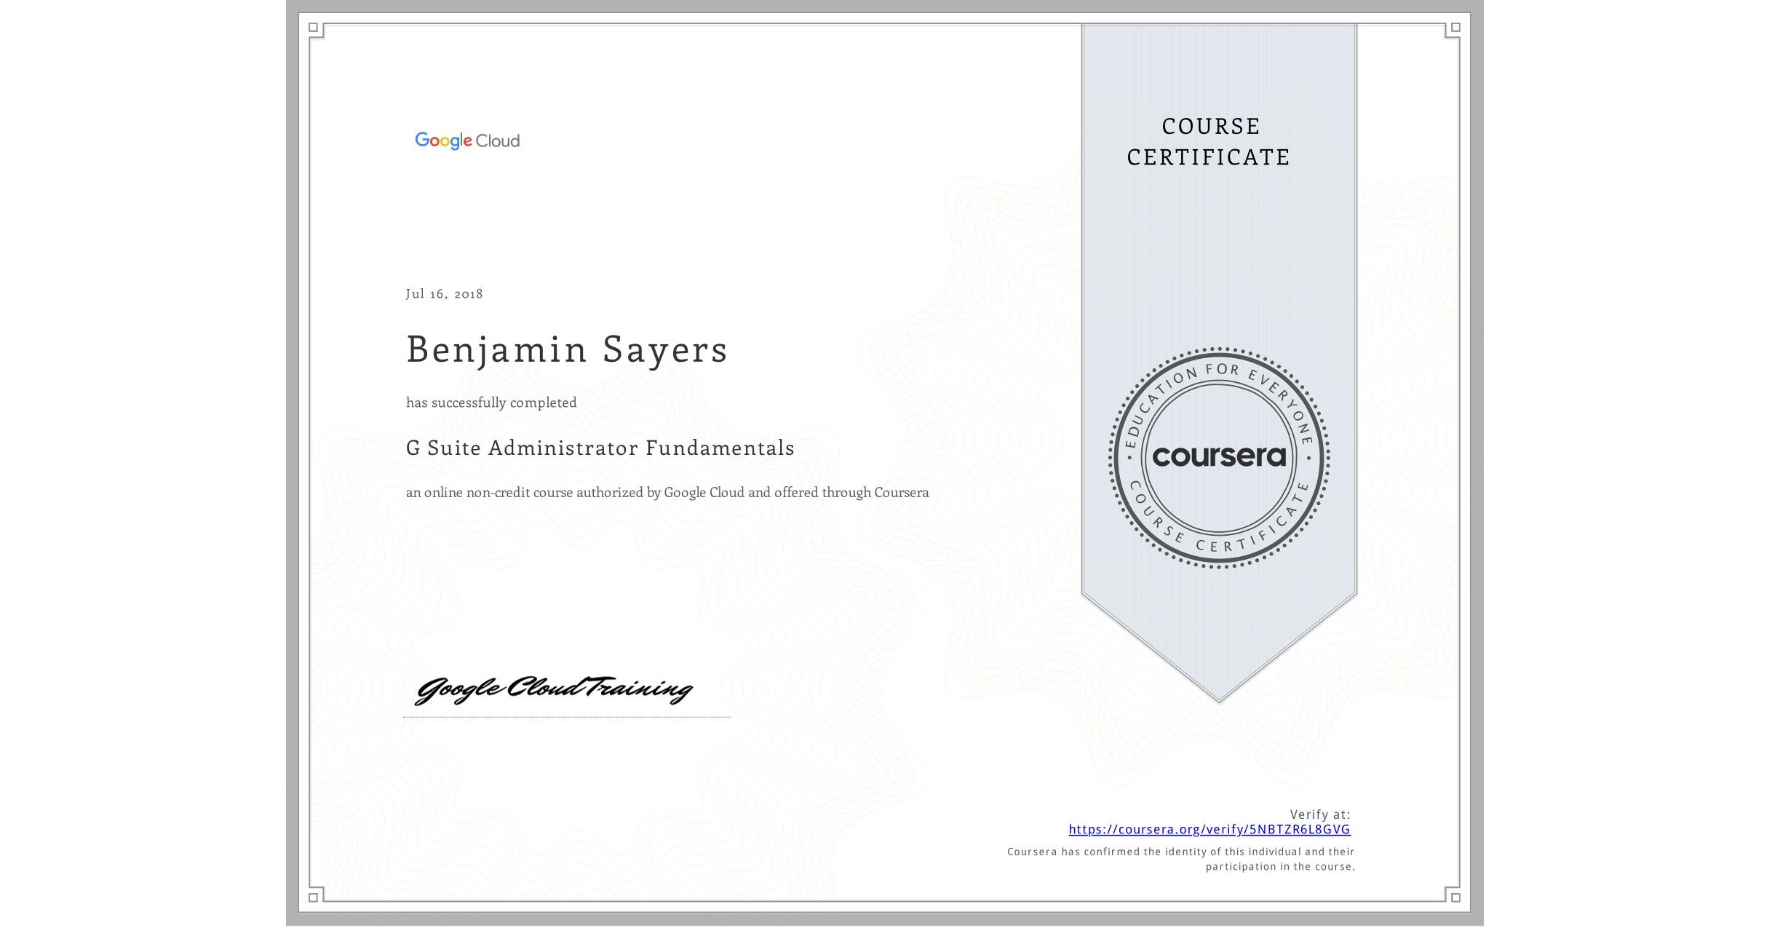 View certificate for Benjamin Sayers, G Suite Administrator Fundamentals, an online non-credit course authorized by Google Cloud and offered through Coursera